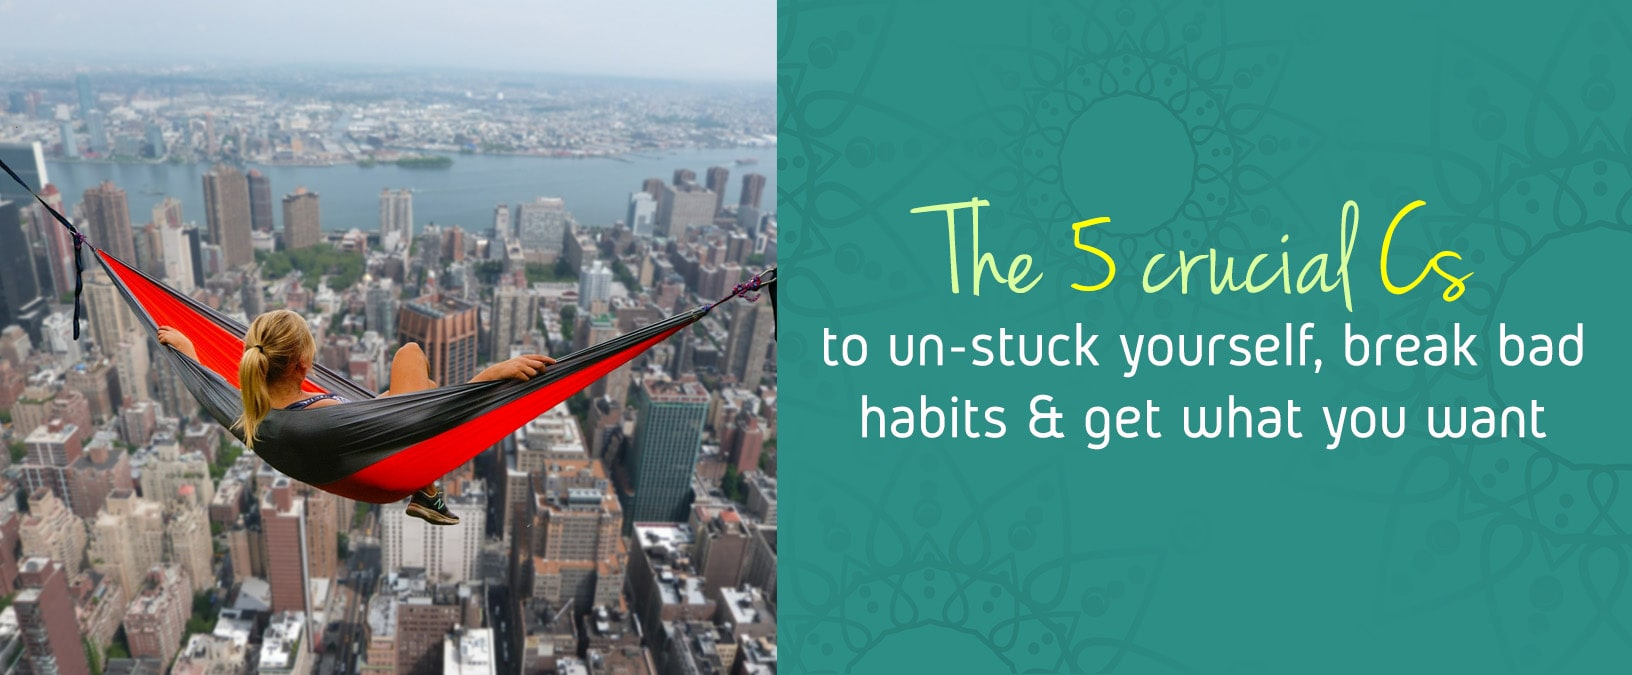 The 5 crucial Cs to un-stuck yourself, break bad habits & get what you want